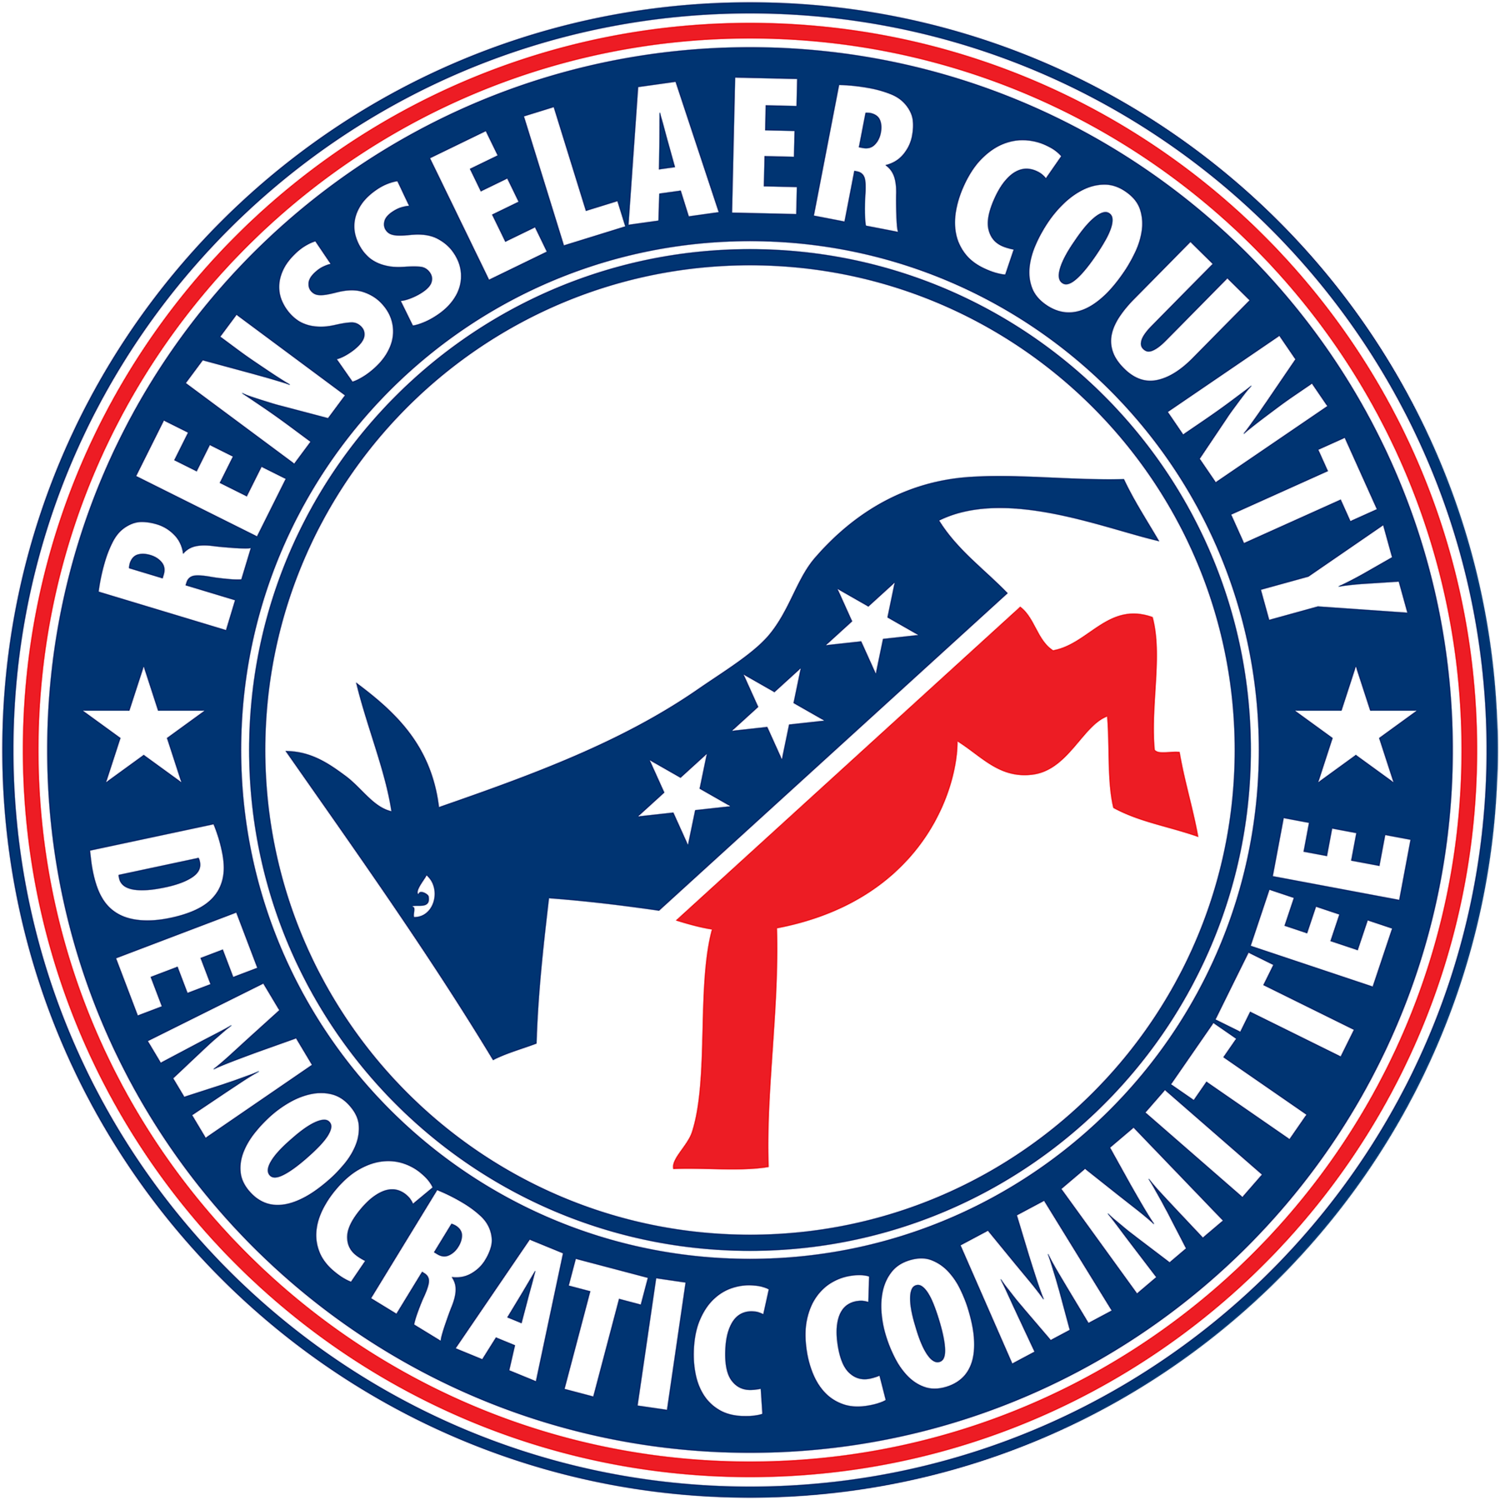 Rensselaer County Democratic Committee